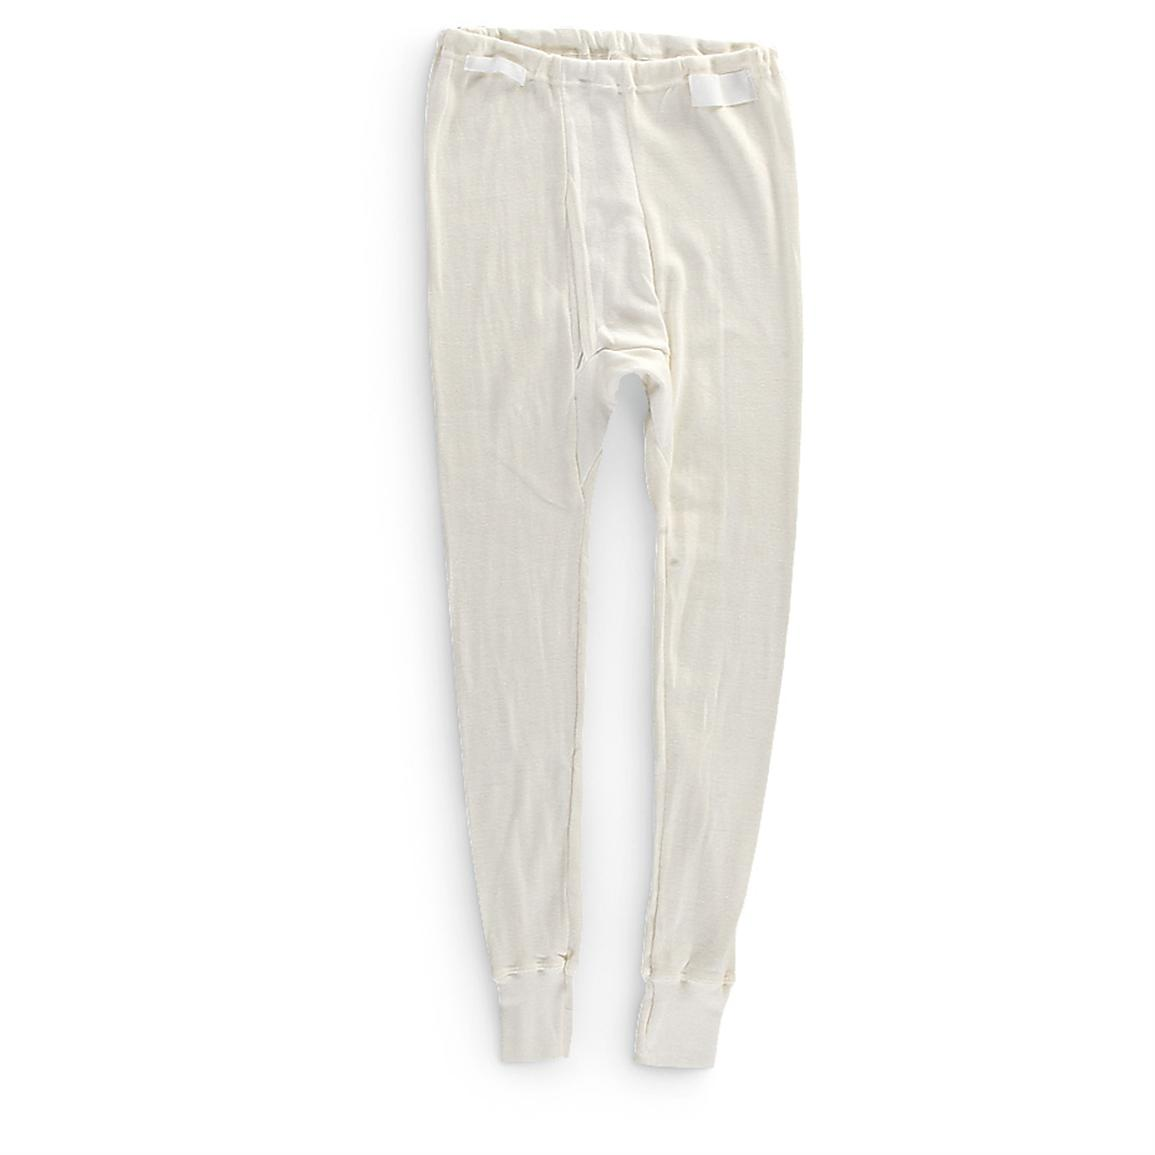 6 New German Military Surplus LJ Bottoms, Off-white